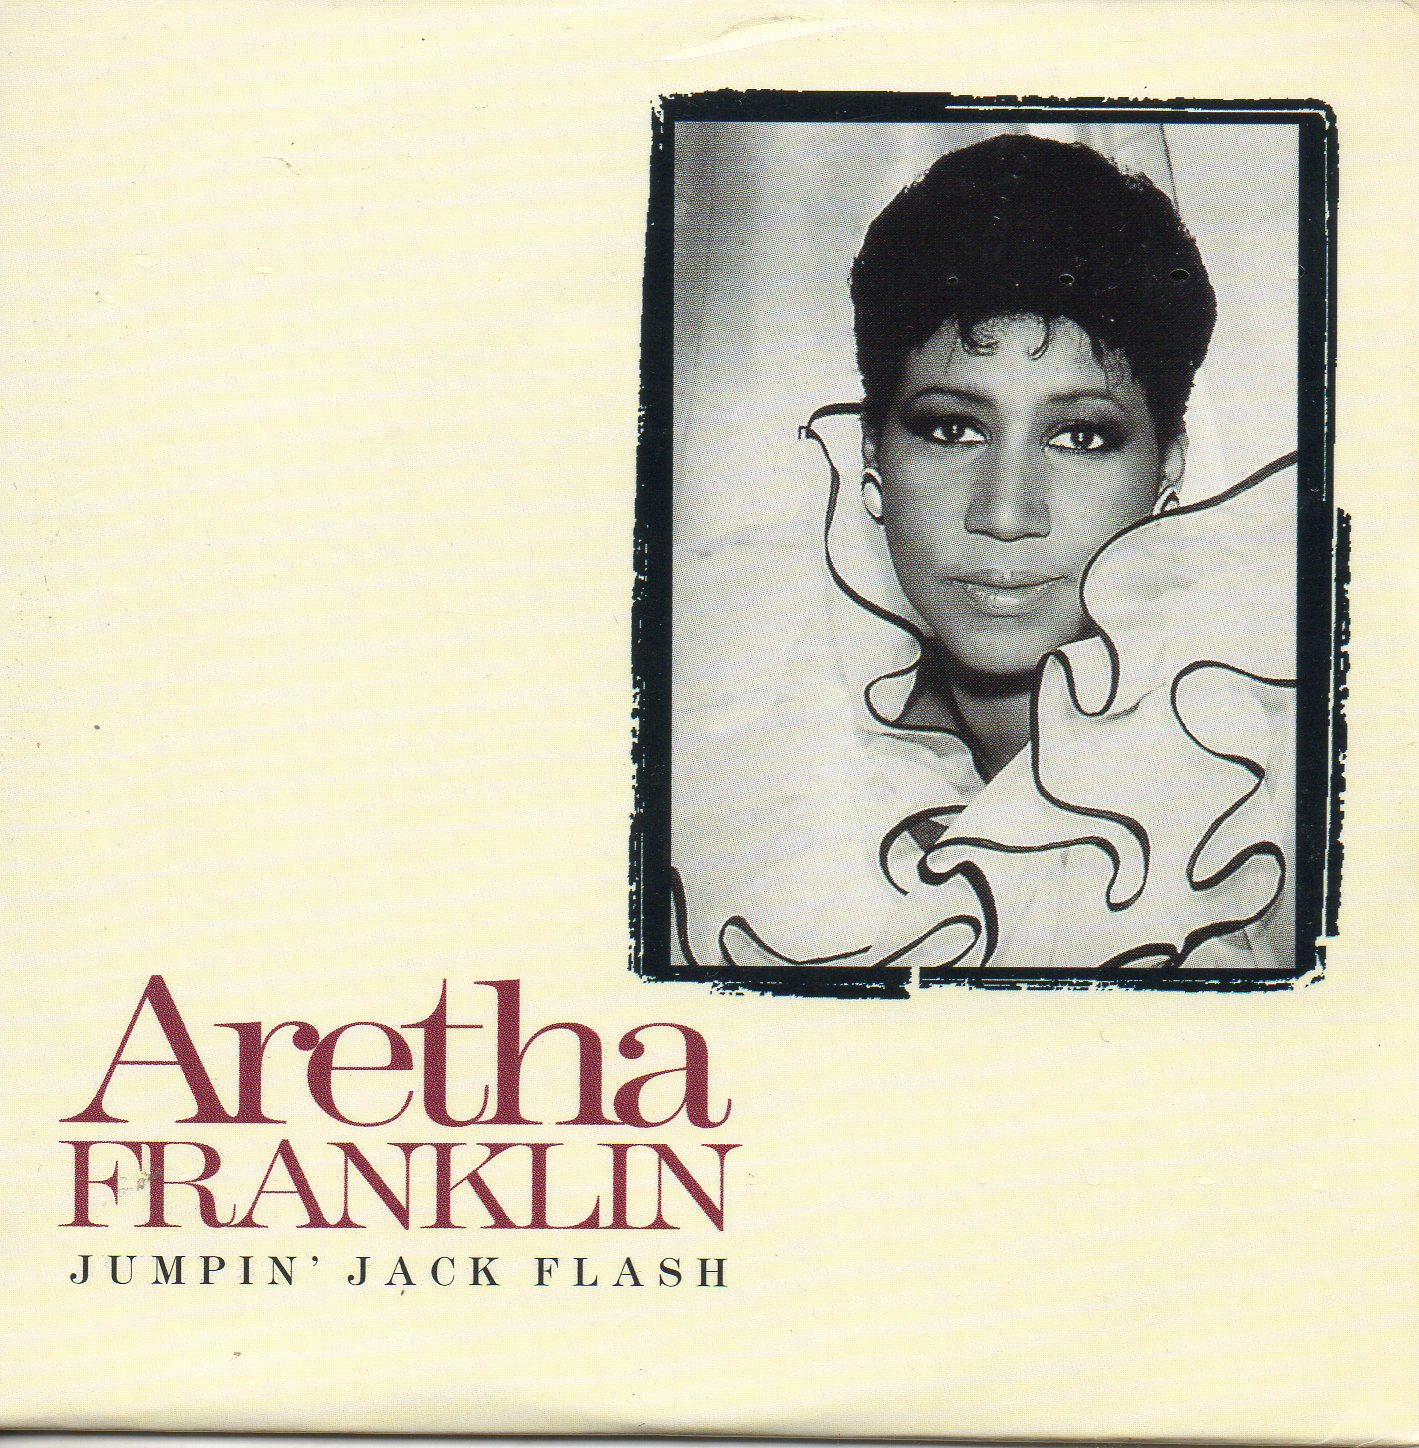 ARETHA FRANKLIN - THE ROLLING STONES - Jumpin'' jack flash 2-track CARD SLEEVE - CD single